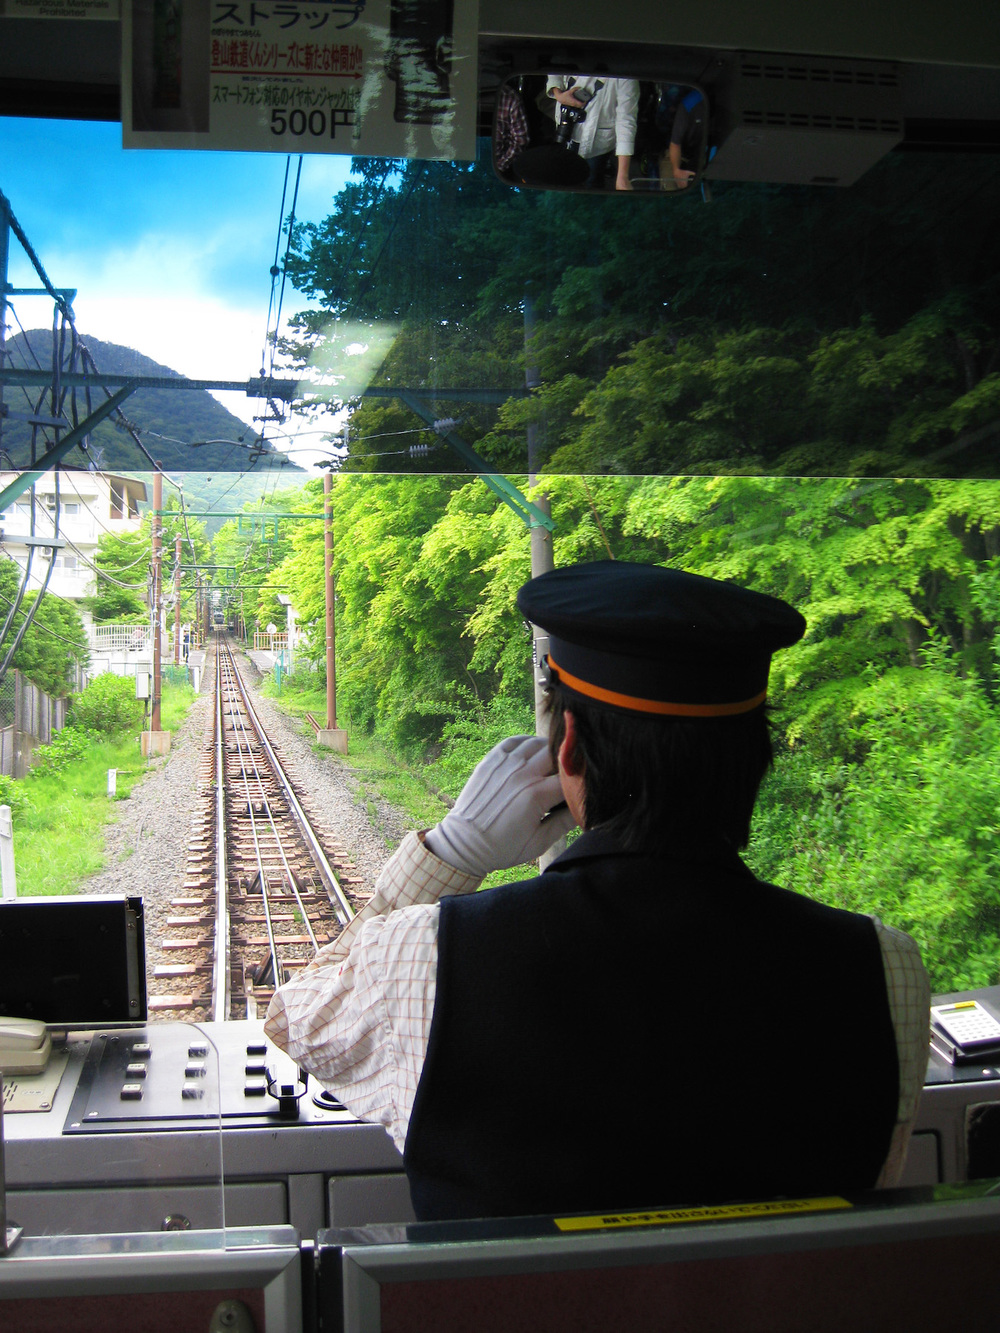 Another smartly dressed rail conductor, making our way to Souzan Station on the way to Owakudane Station where they boil the black lucky eggs (eggs set in boiling sulfur-water pools) along the Hakone loop. They take extreme pride in their sharply made outfits with special watches, gloves, and hats.